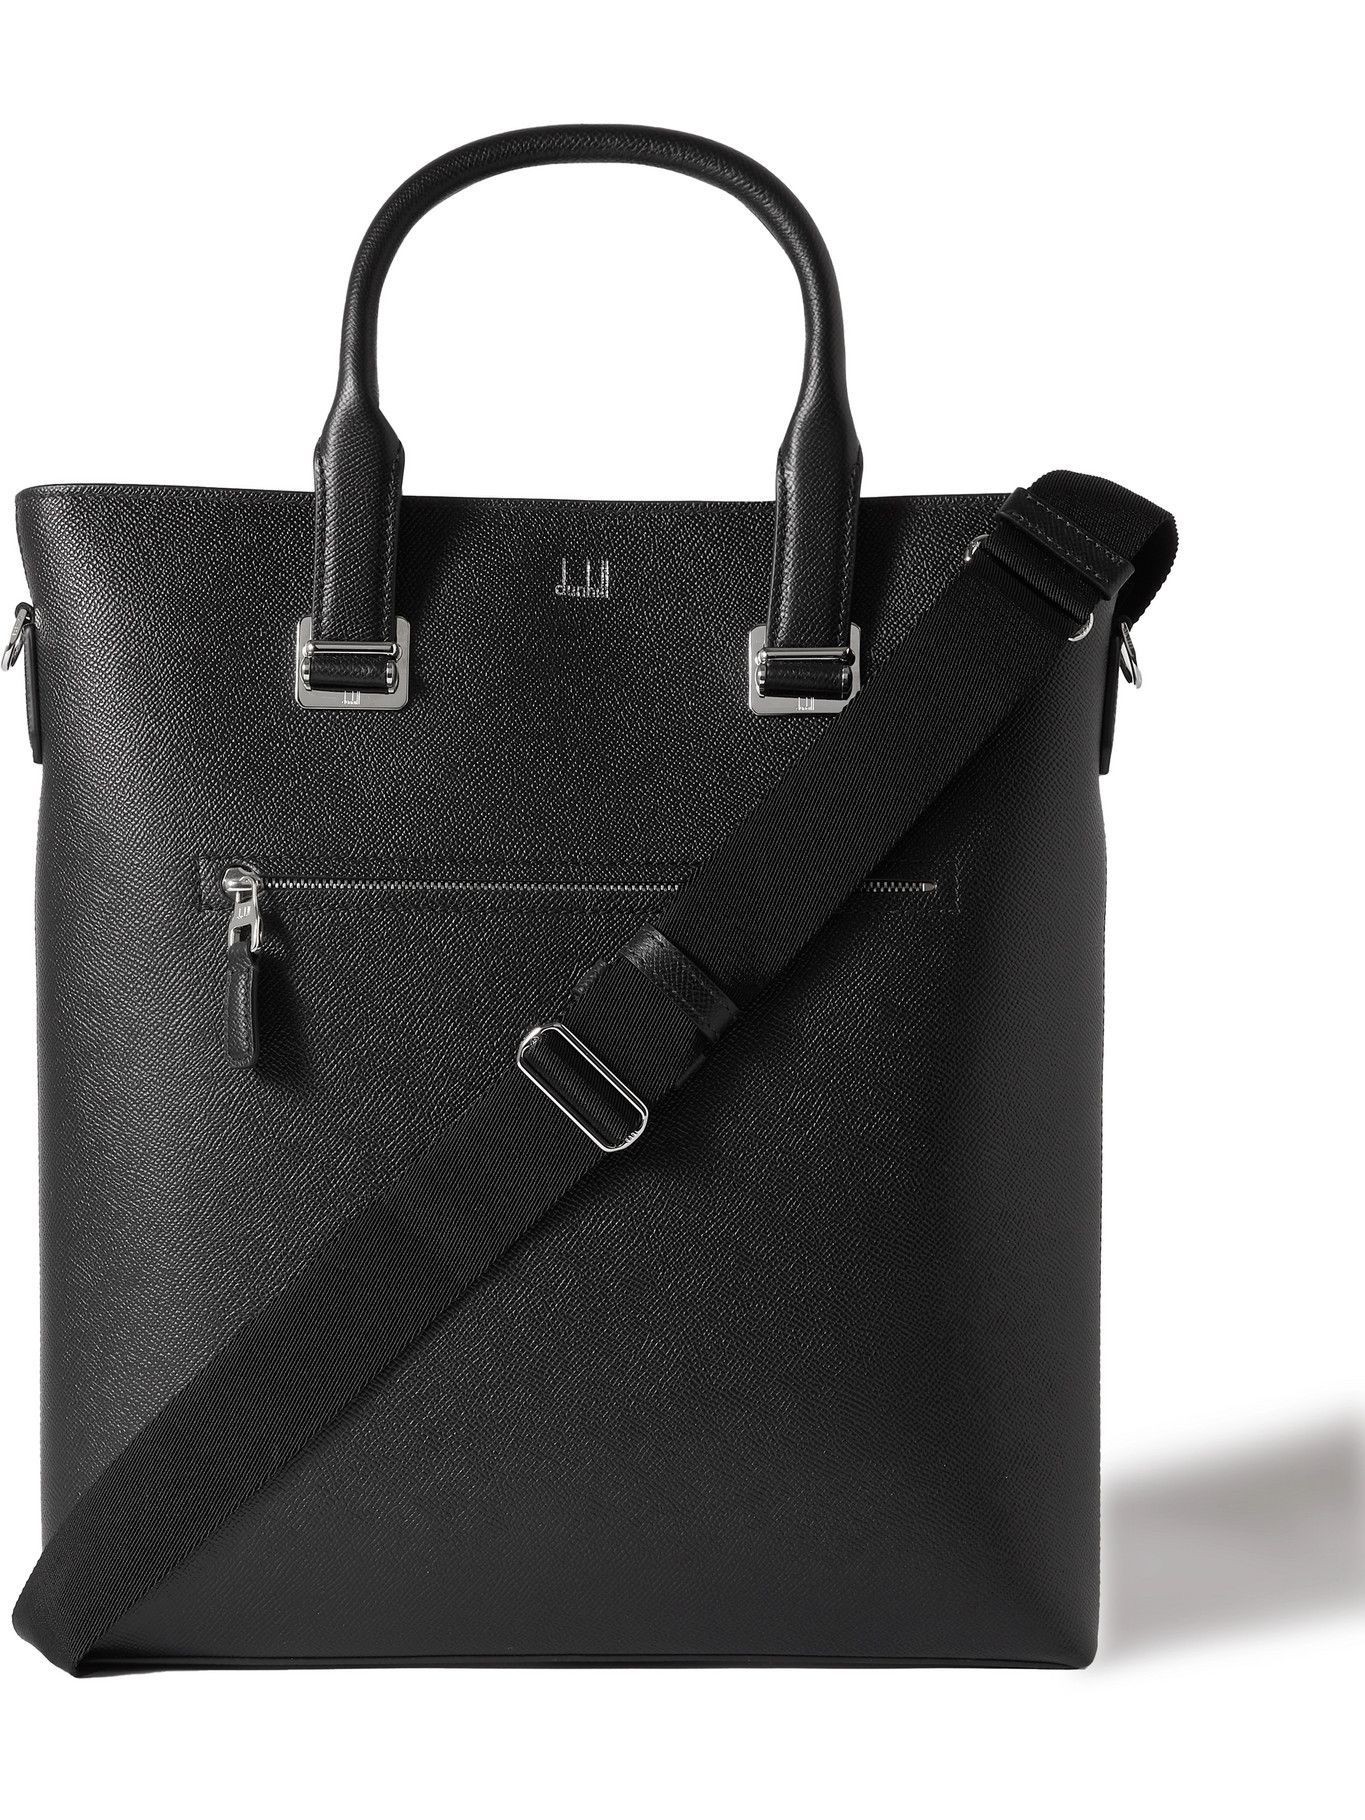 DUNHILL - Cross-Grain Leather Tote Bag